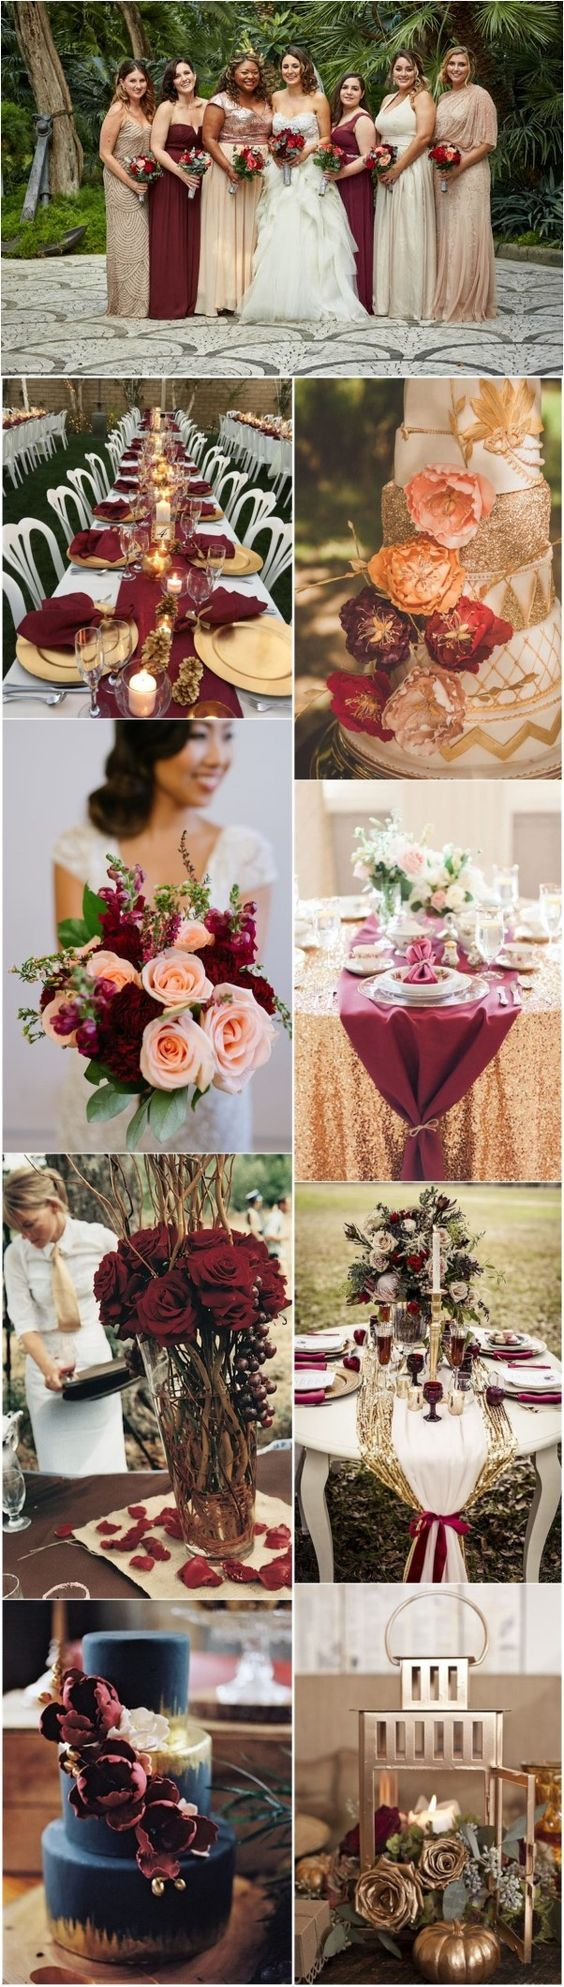 22 romantic burgundy and rose gold fall wedding ideas romantic wedding colors 22 romantic burgundy and rose gold fall wedding ideas see junglespirit Choice Image